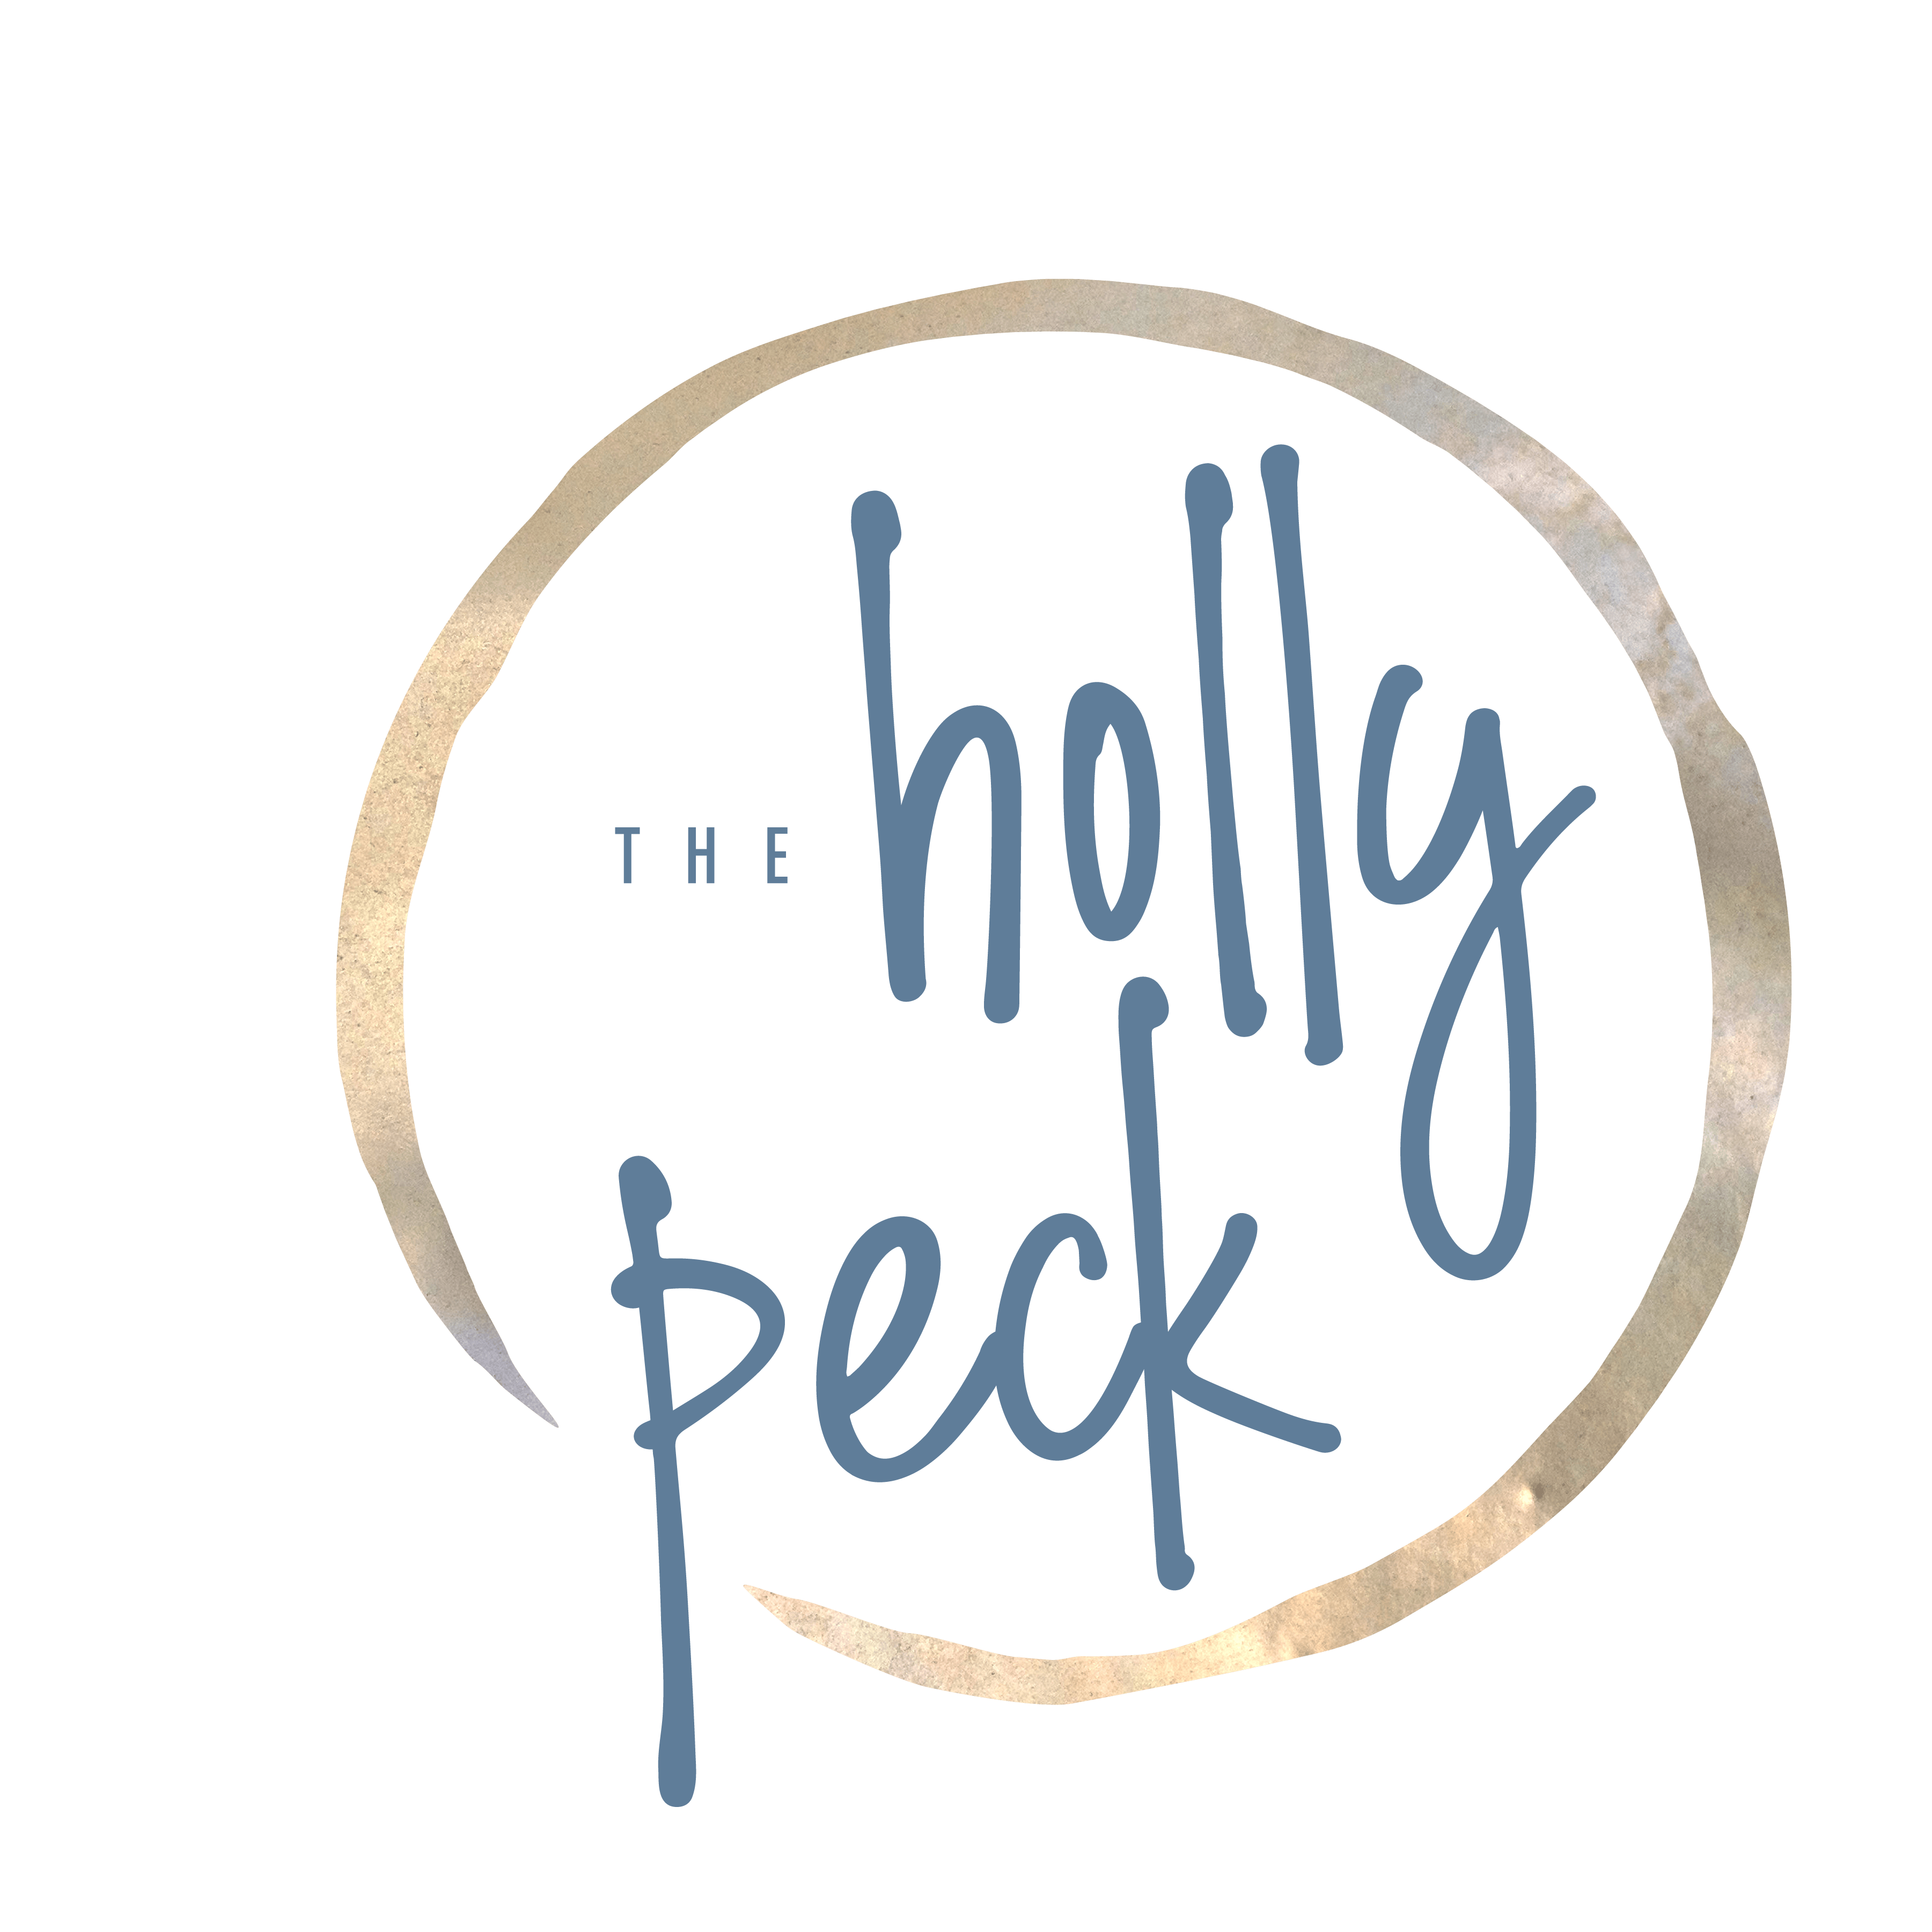 thehollypeck